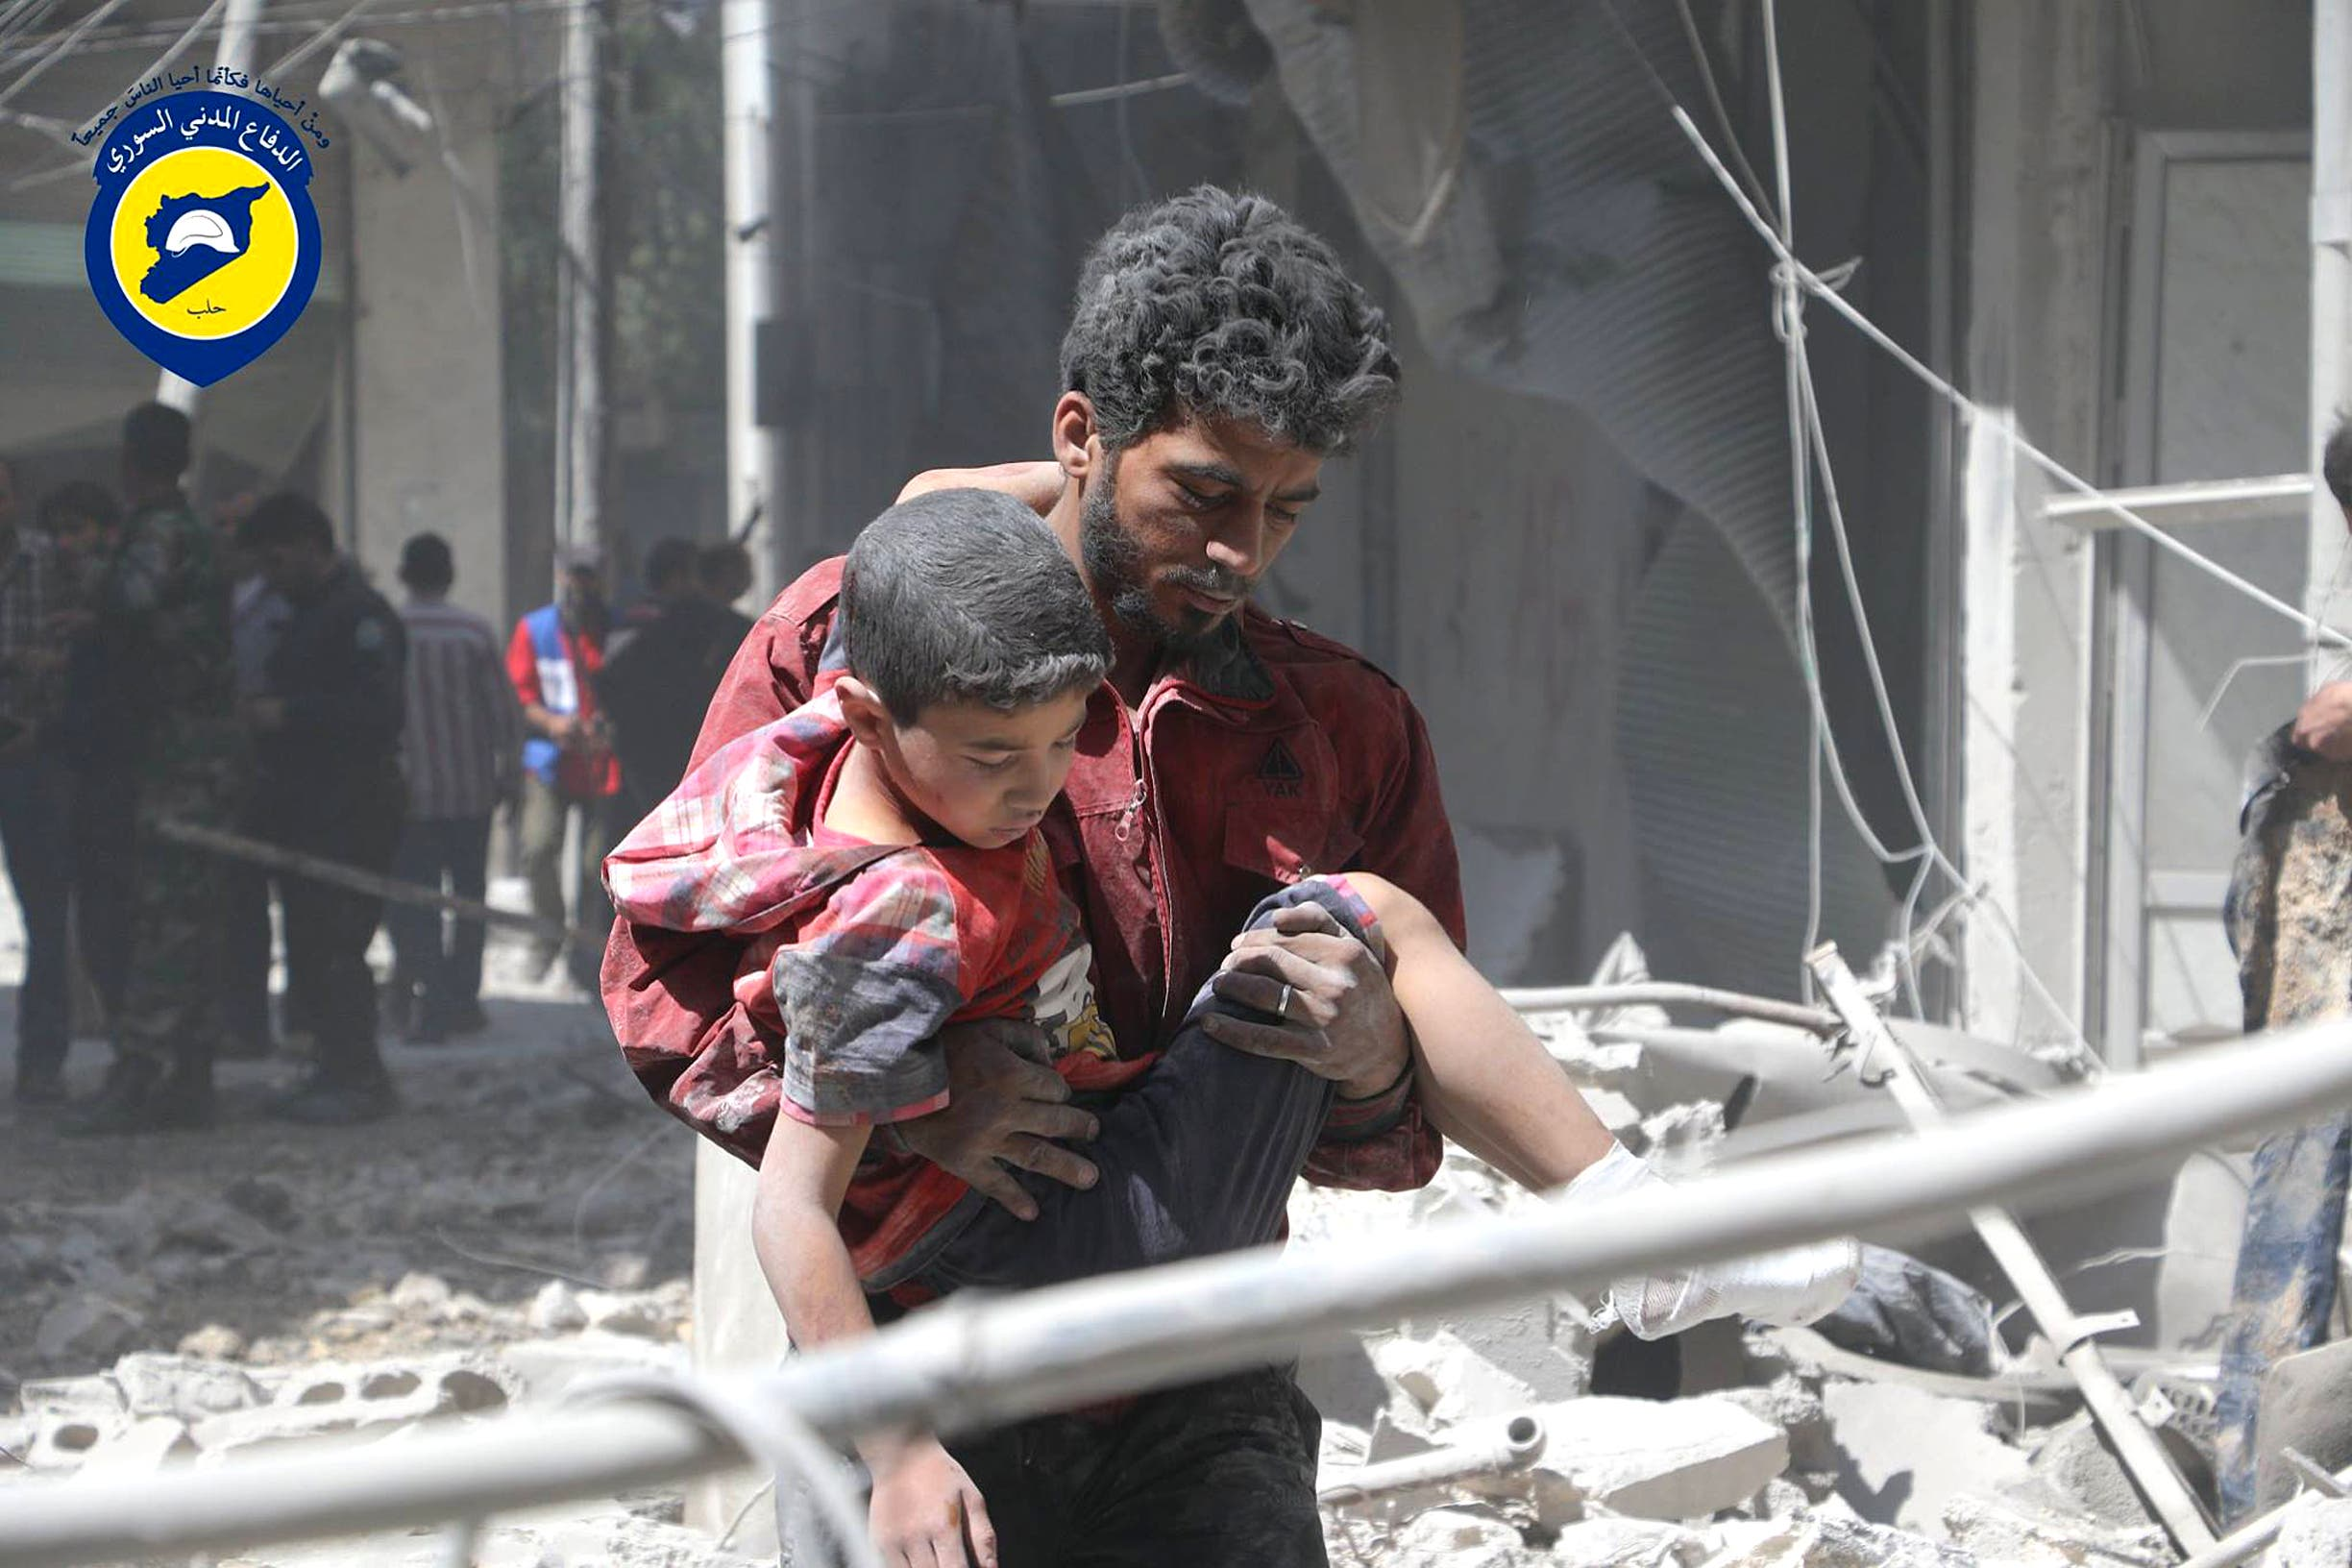 In this file photo taken on May 31, 2016 provided by the Syrian Civil Defense Directorate in Liberated Province of Aleppo, which has been authenticated based on its contents and other AP reporting, shows Syrian man carries an injured boy, in Aleppo, Syria. ap